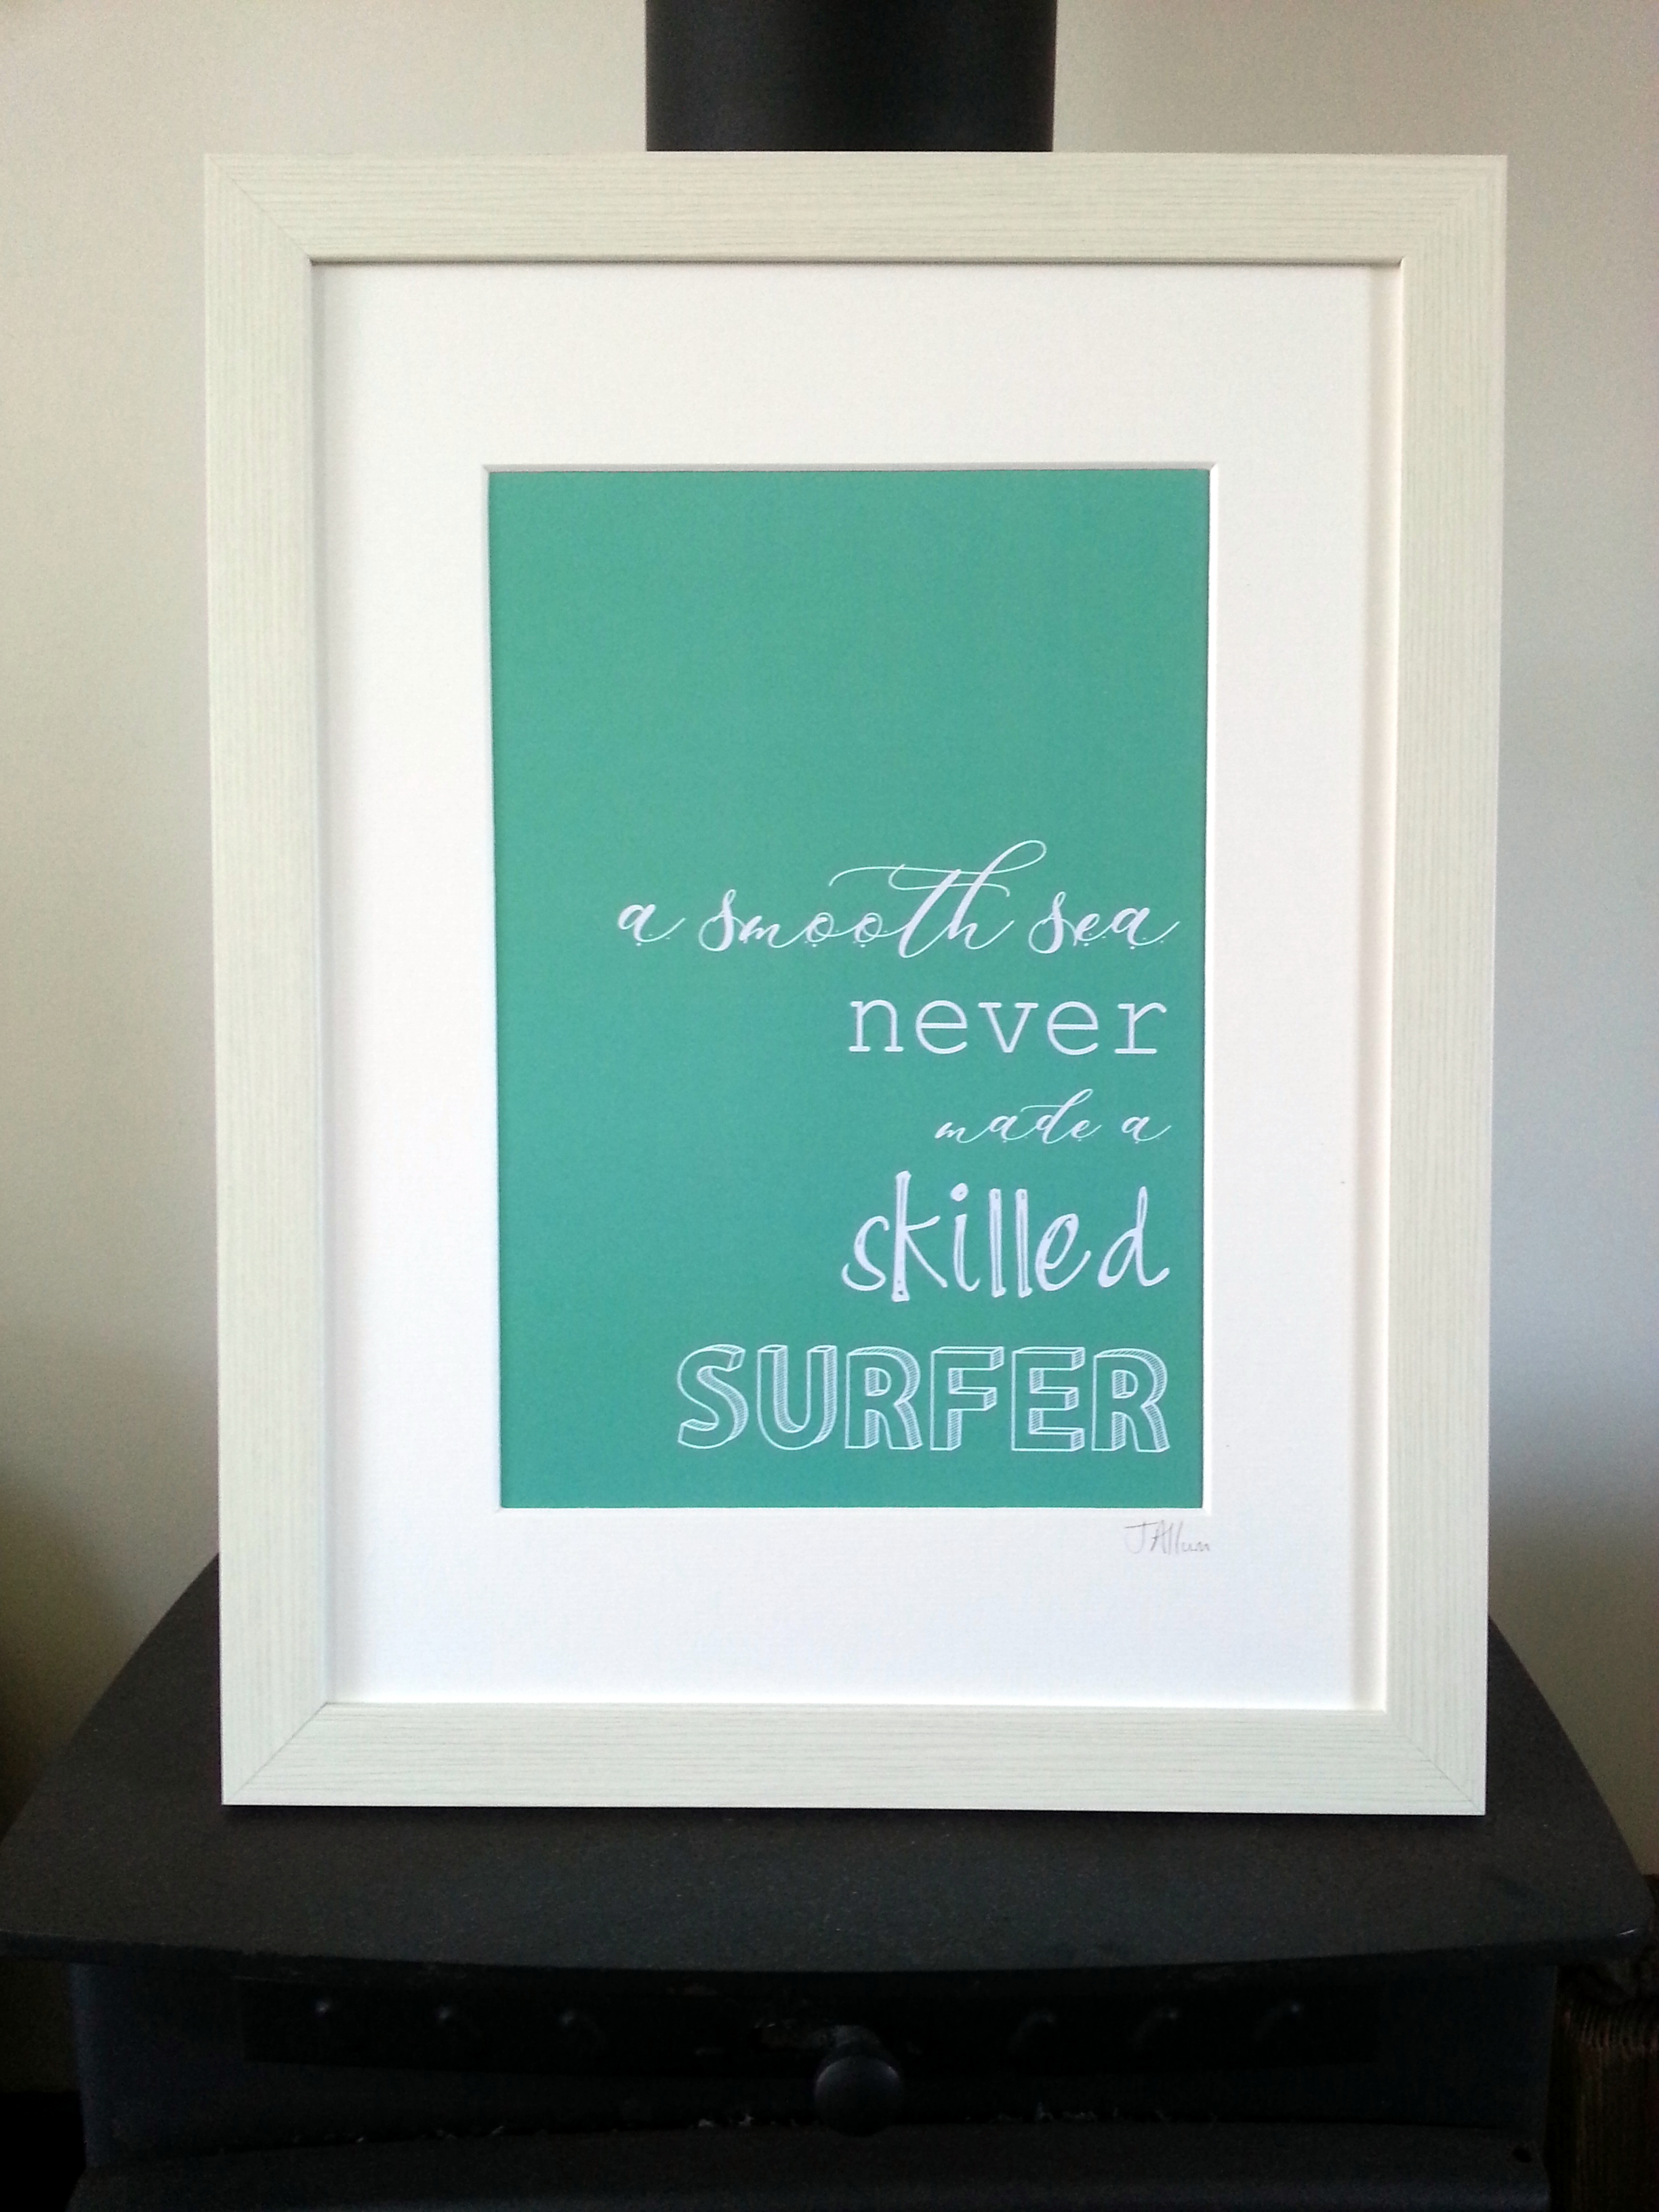 A smooth sea never made a skilled surfer